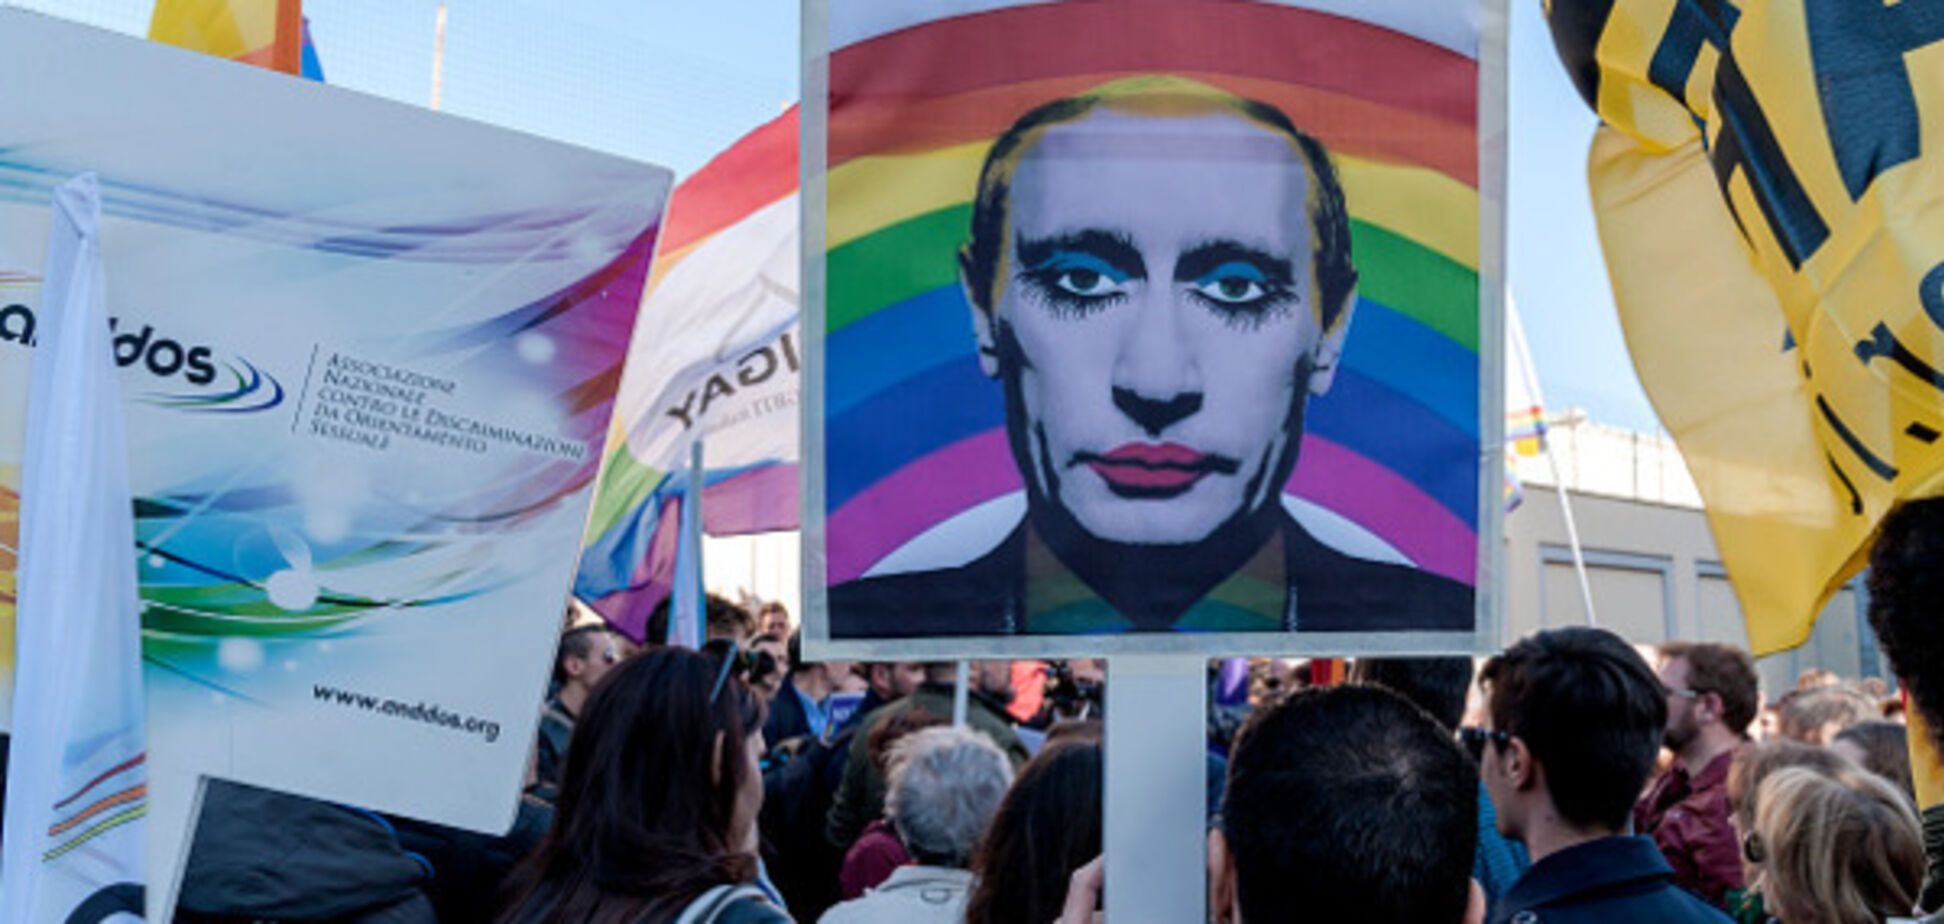 LGBT Demonstration In Front Of The Russian Embassy In Rome